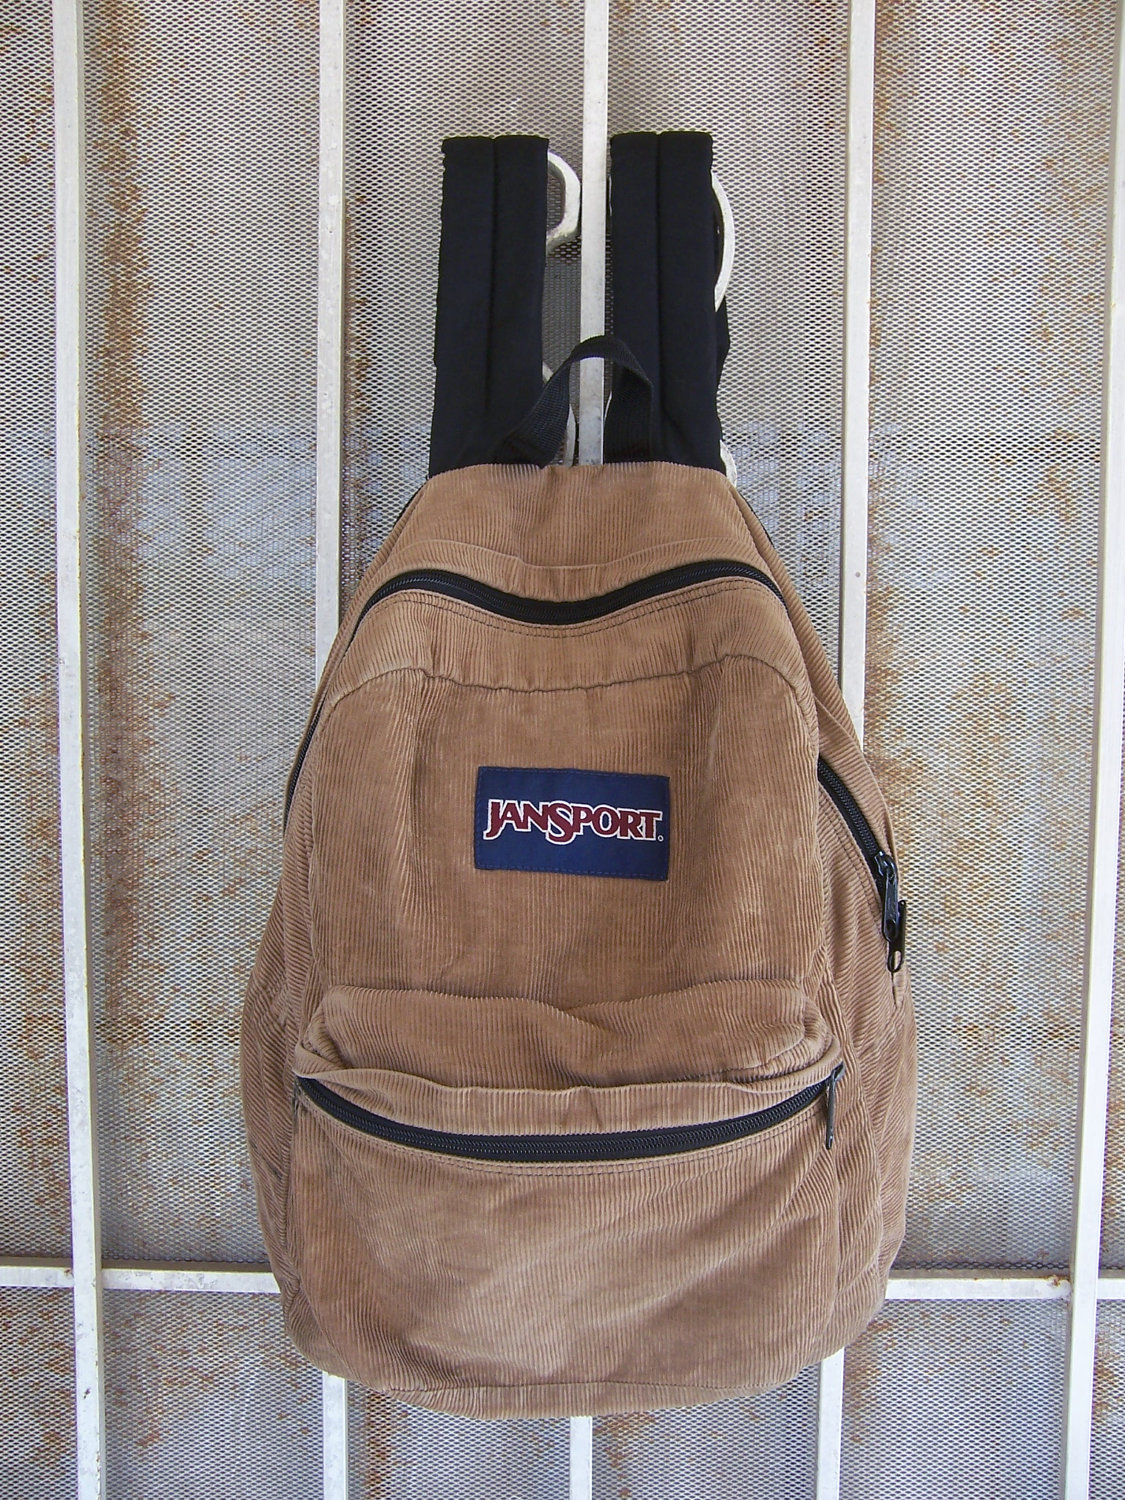 Jansport Corduroy Backpack t8IHwquC